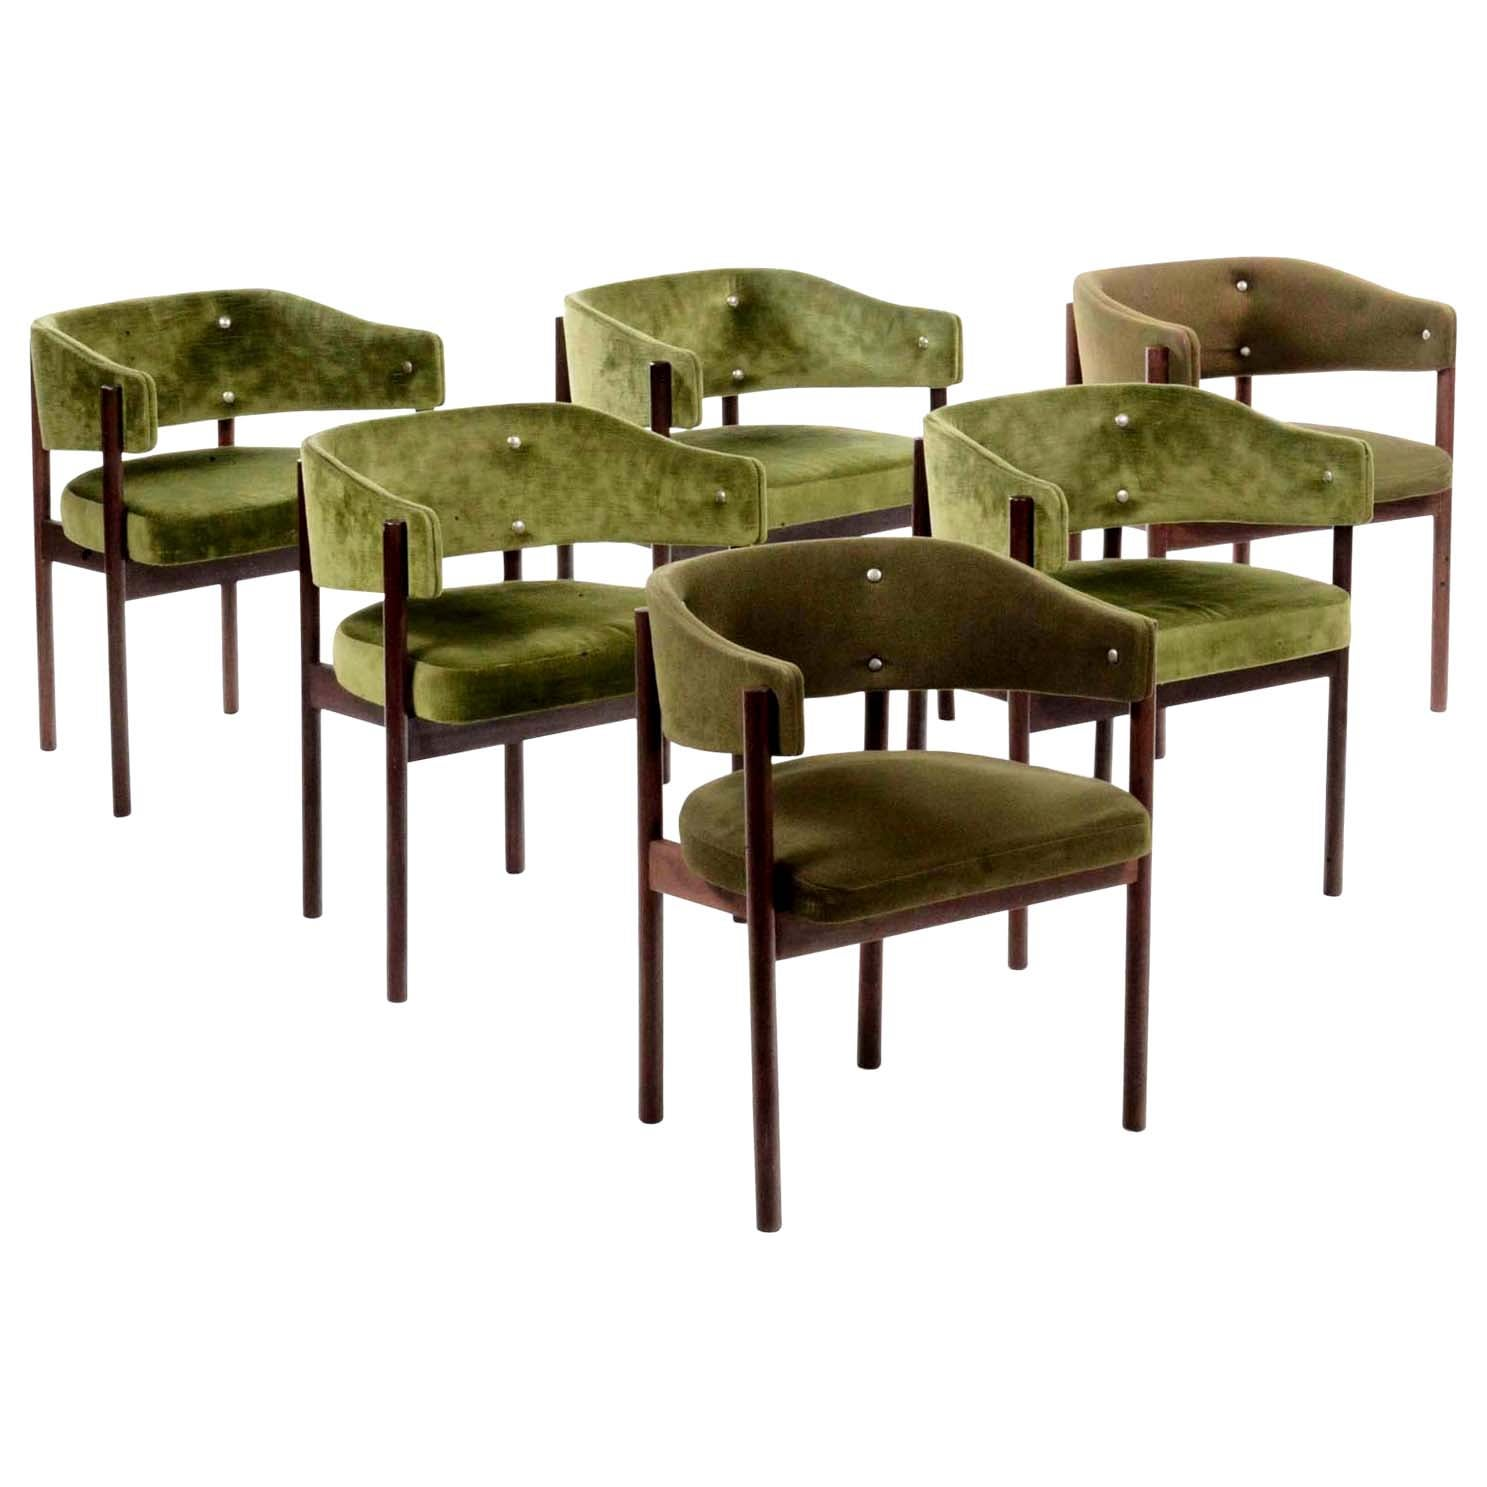 1950s by Italian Midcentury Design Chairs Set of 6